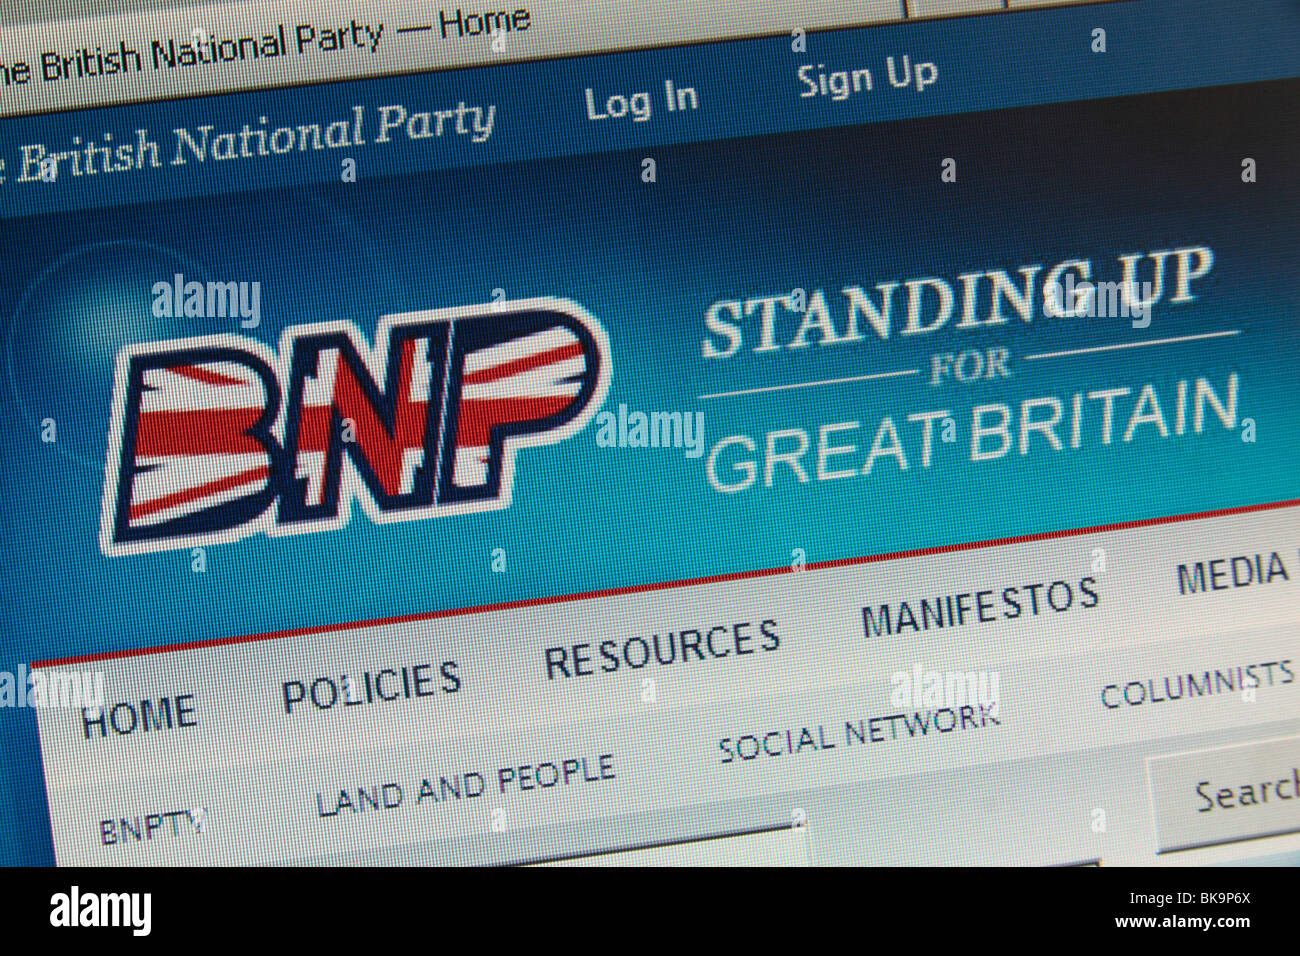 Screen shot of the British National Party's (BNP) web site with 'Standing Up for Great Britain' slogan. - Stock Image